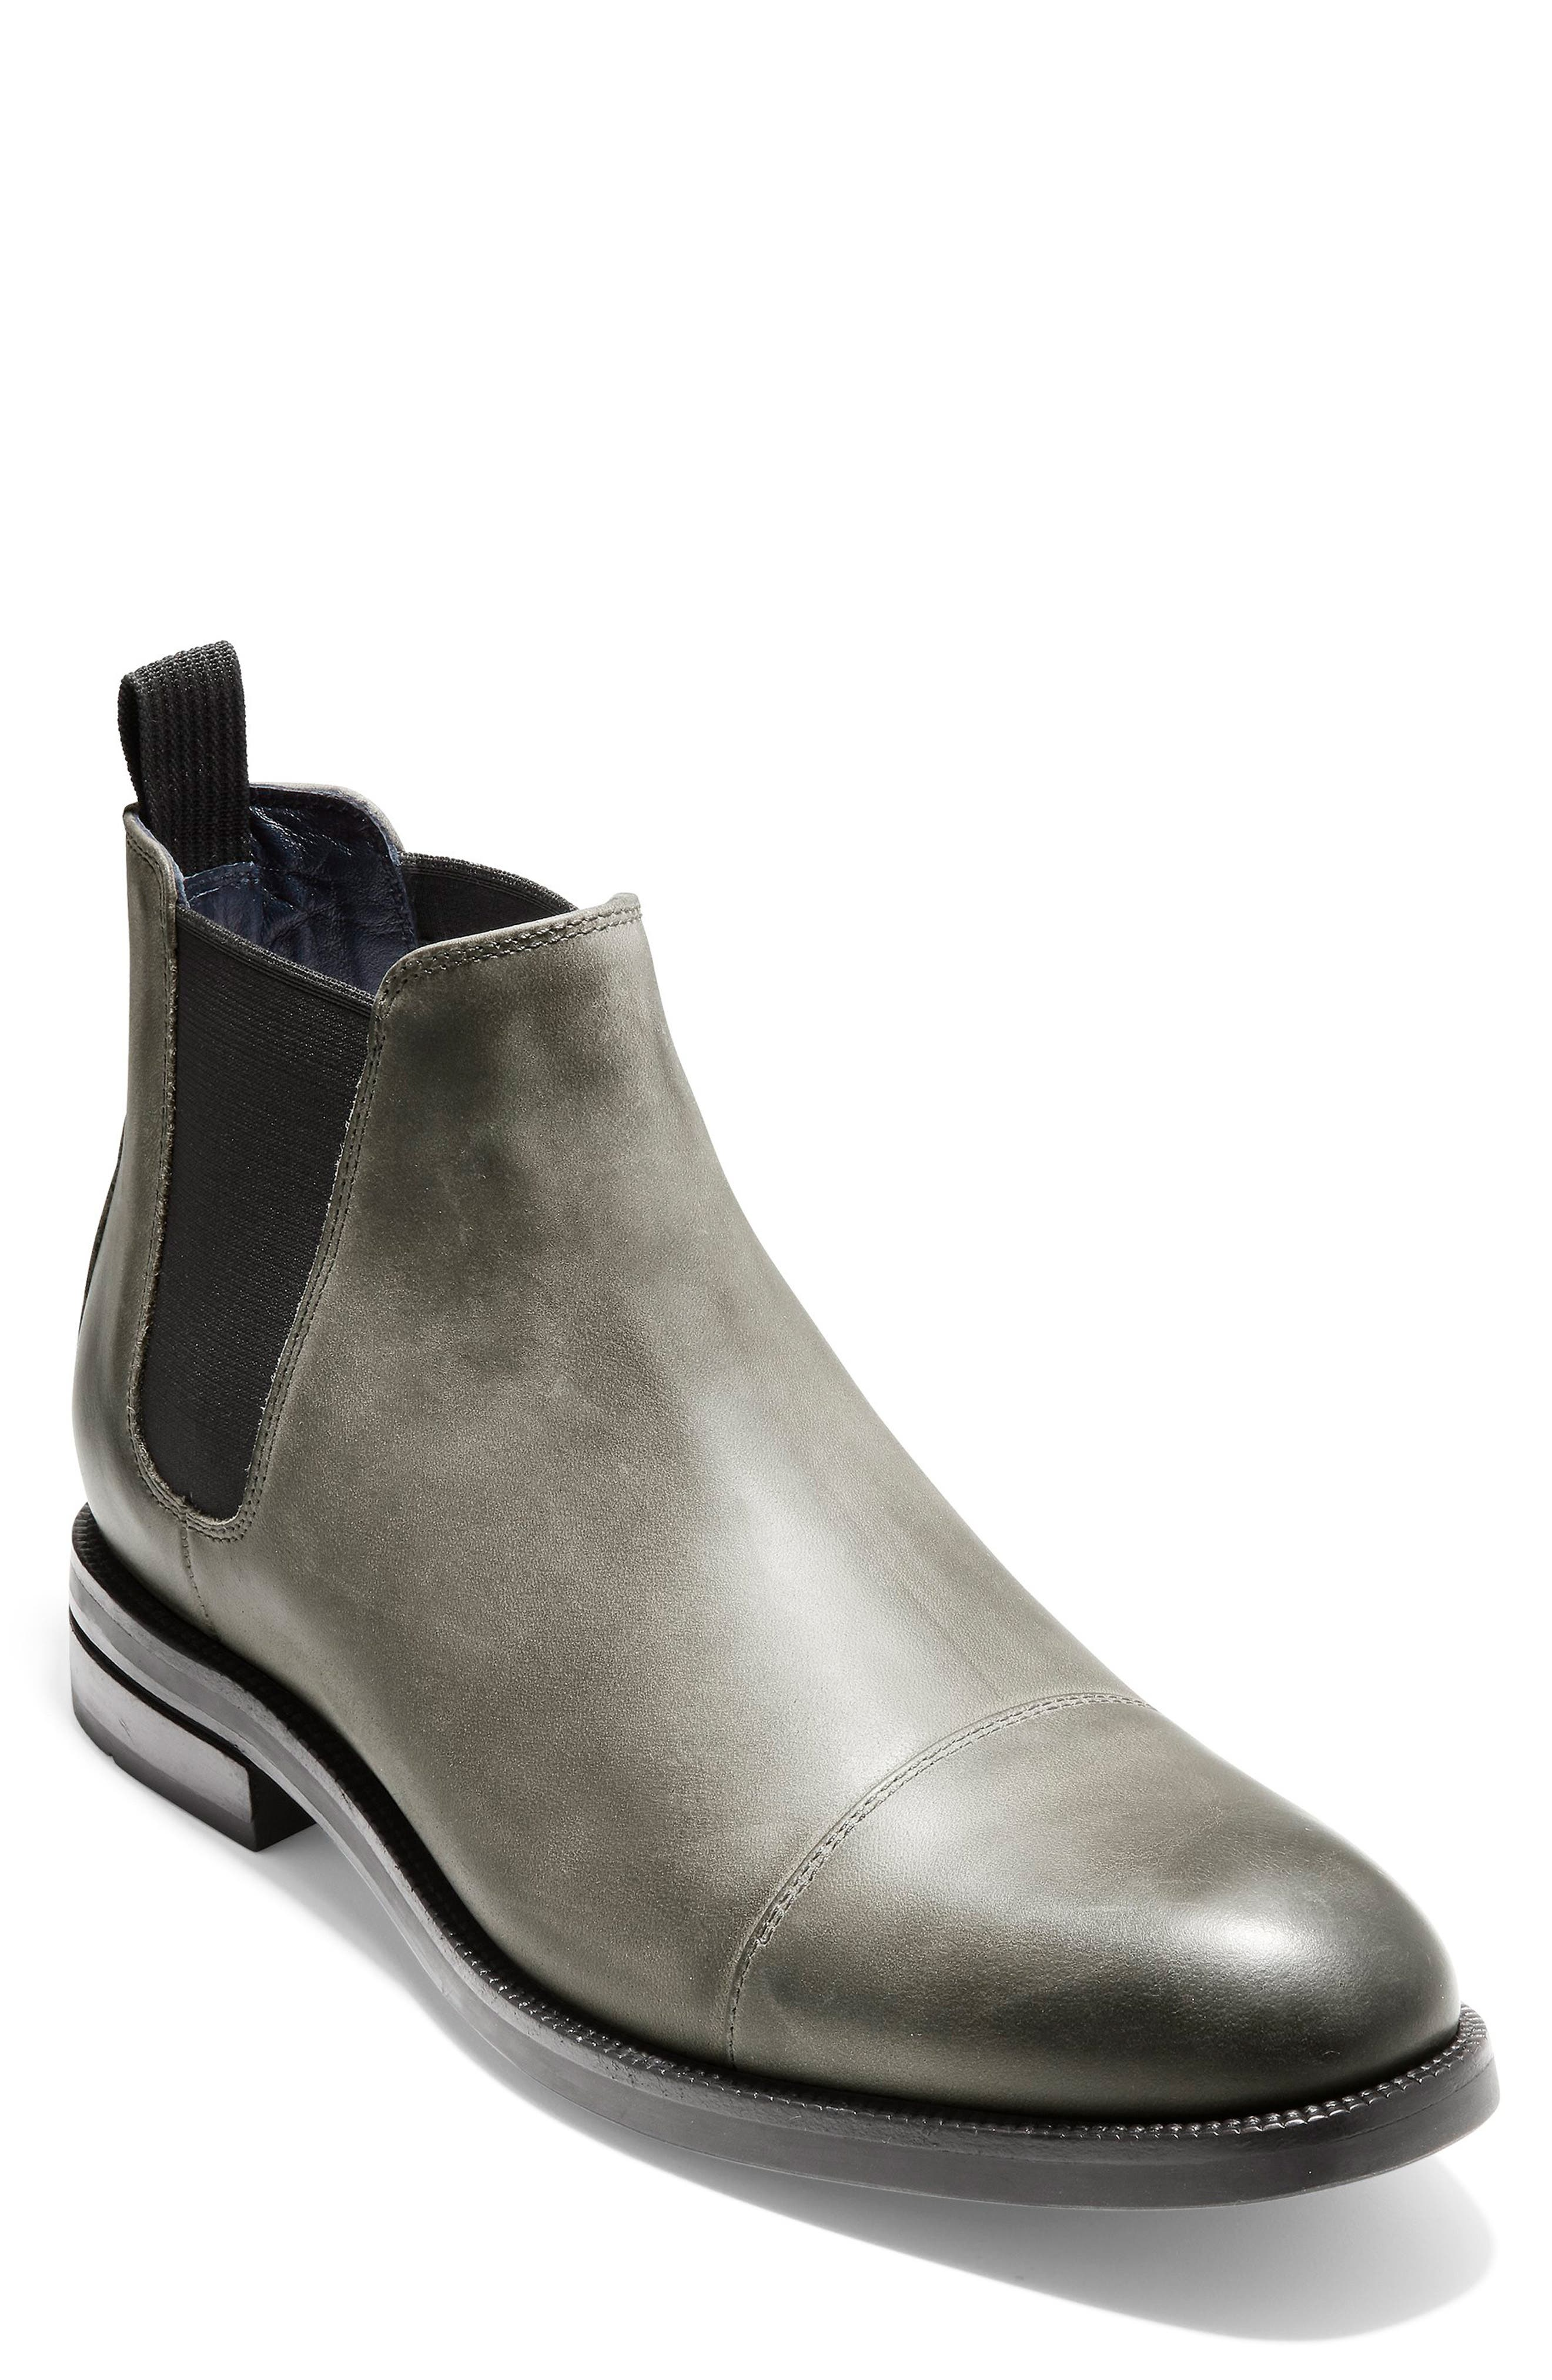 Wagner Grand Chelsea Boot,                         Main,                         color, MIDNIGHT GREY NUBUCK